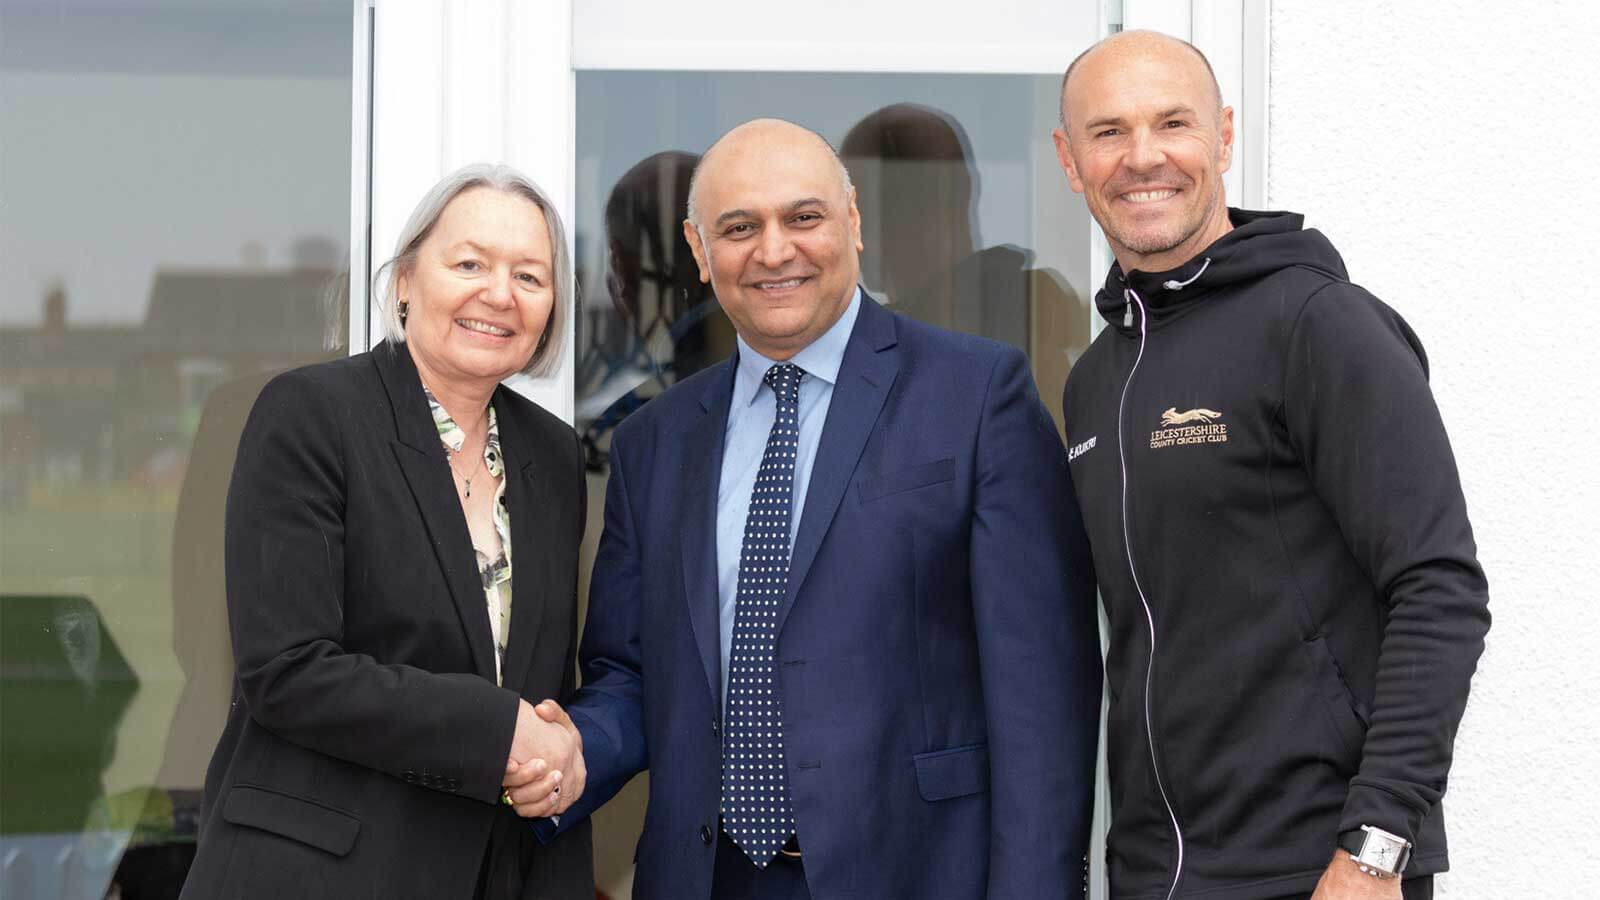 Leicestershire County Cricket Club (LCCC) partnership with Morningside Pharmaceuticals